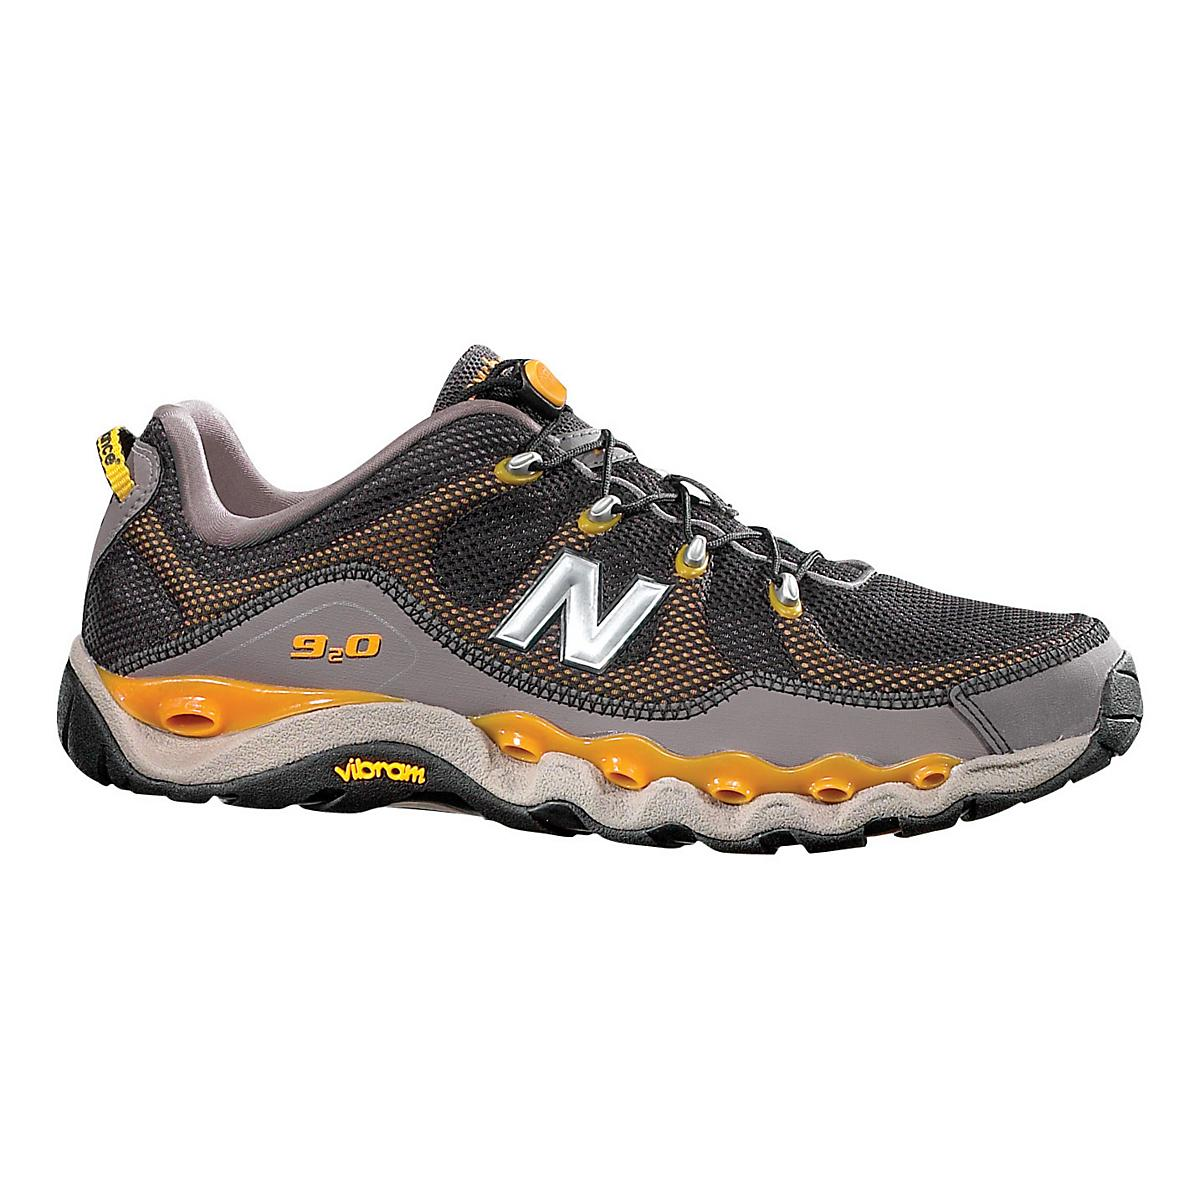 b3c86051c247 Mens New Balance 920 Water Trail Running Shoe at Road Runner Sports